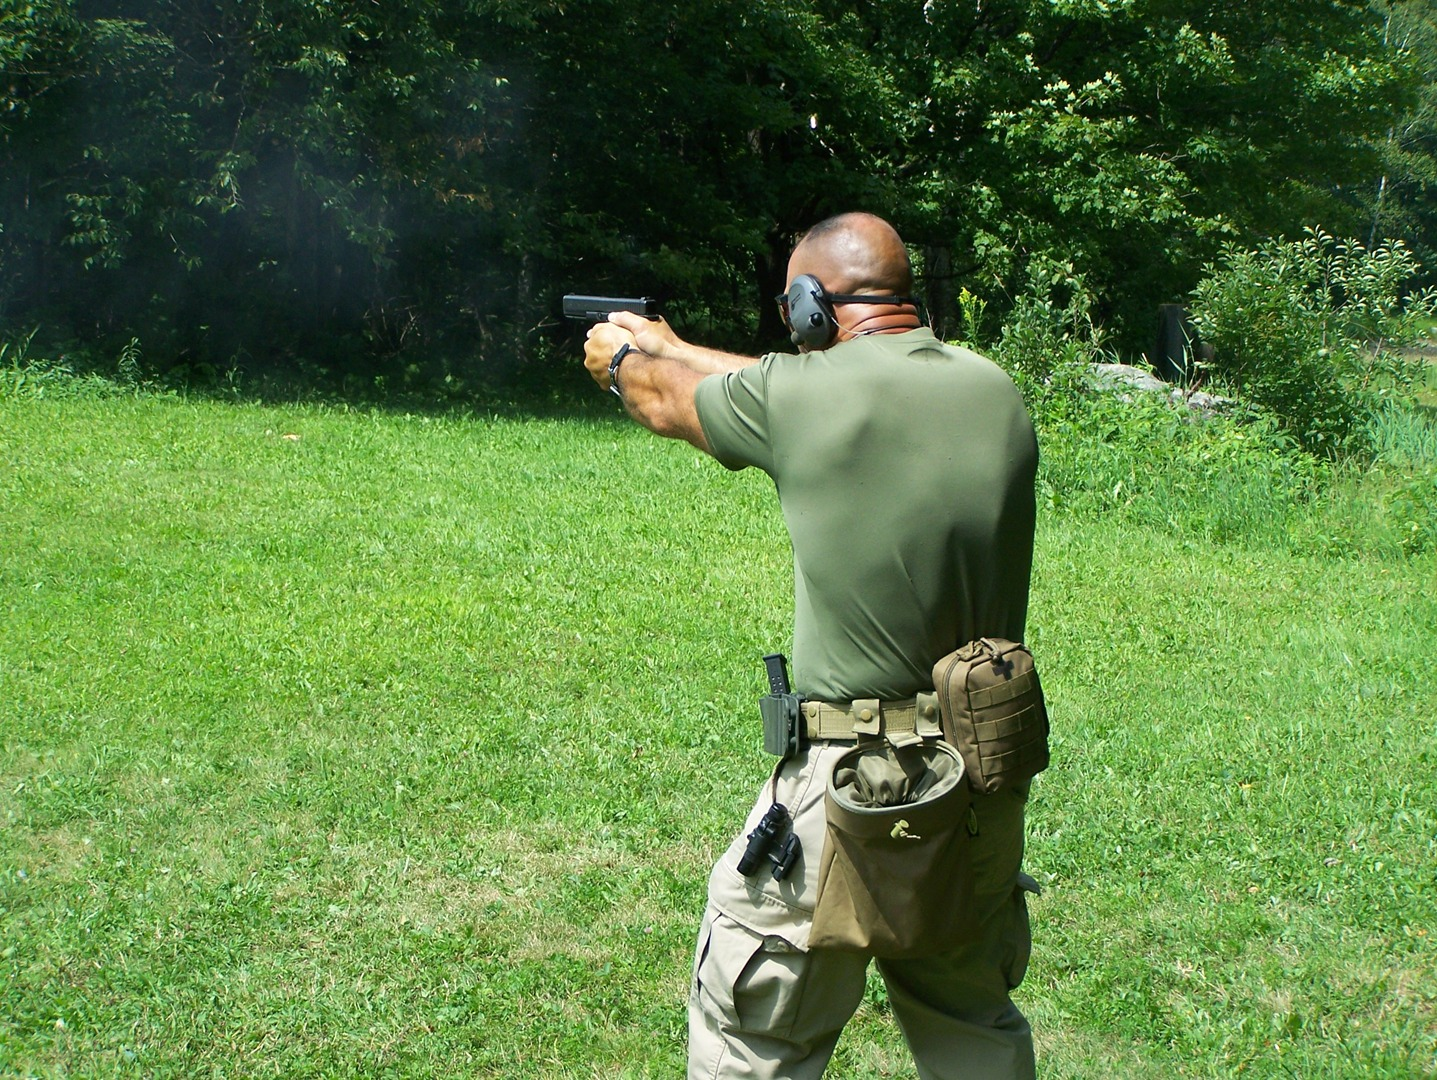 Medical Bill Receipt Excel Combat Pistol With Jake Pelletier  Raven Firearms Training  Upon Receipt Meaning with Ups Proforma Invoice Combat Pistol With Jake Pelletier  Raven Firearms Training Free Invoice Forms Excel